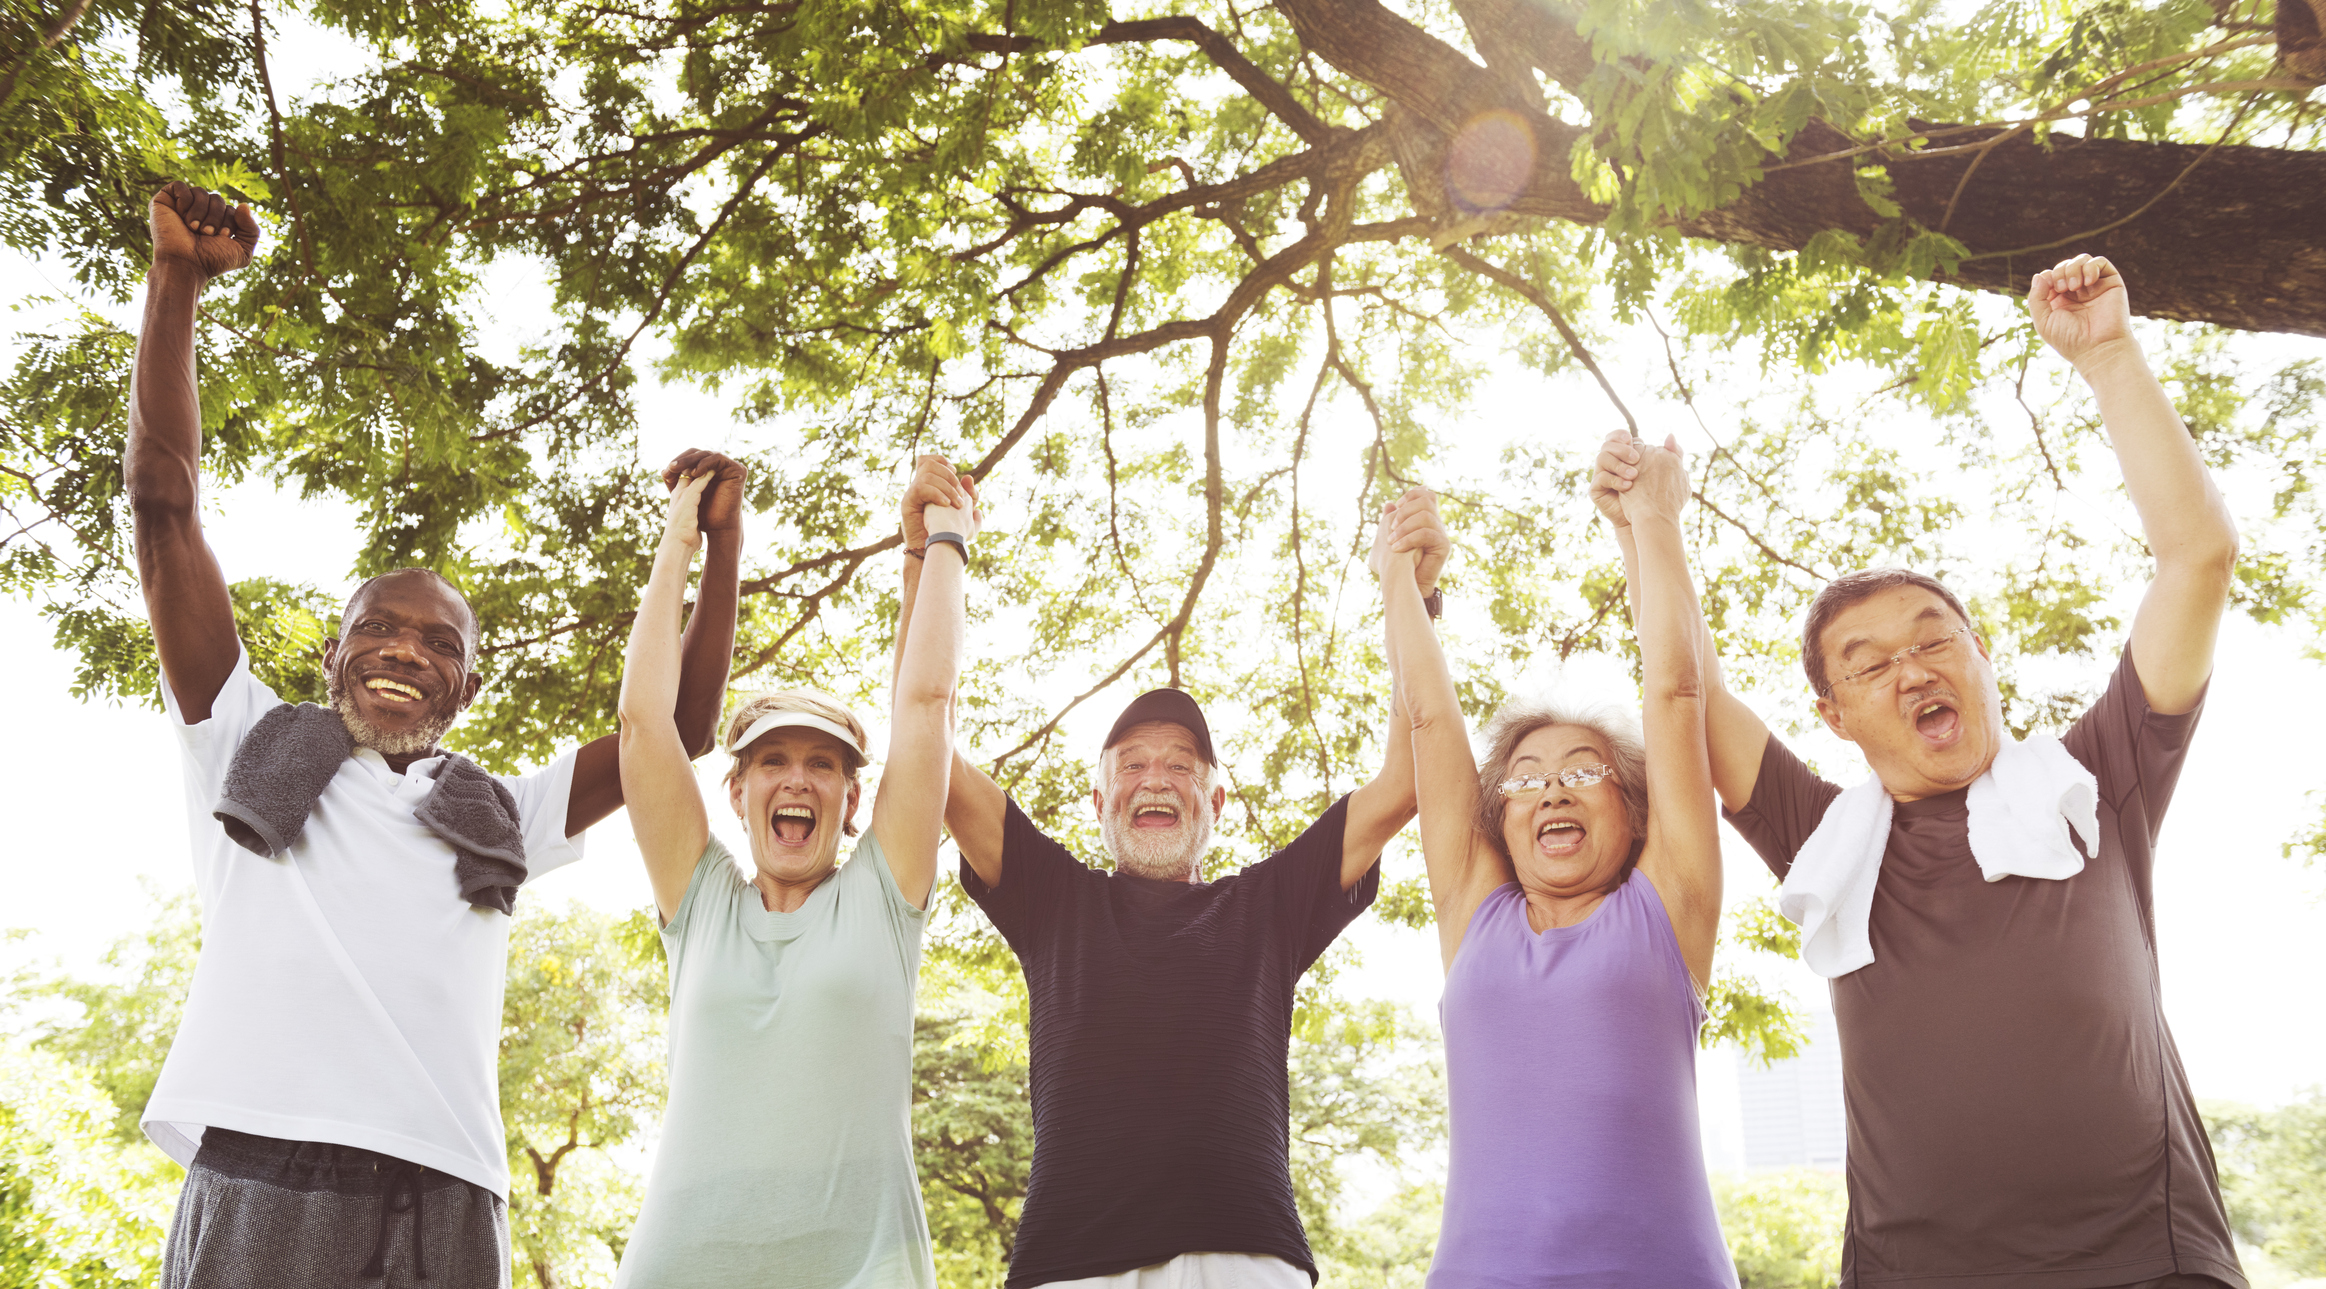 Motivating Students Exercise Outdoors